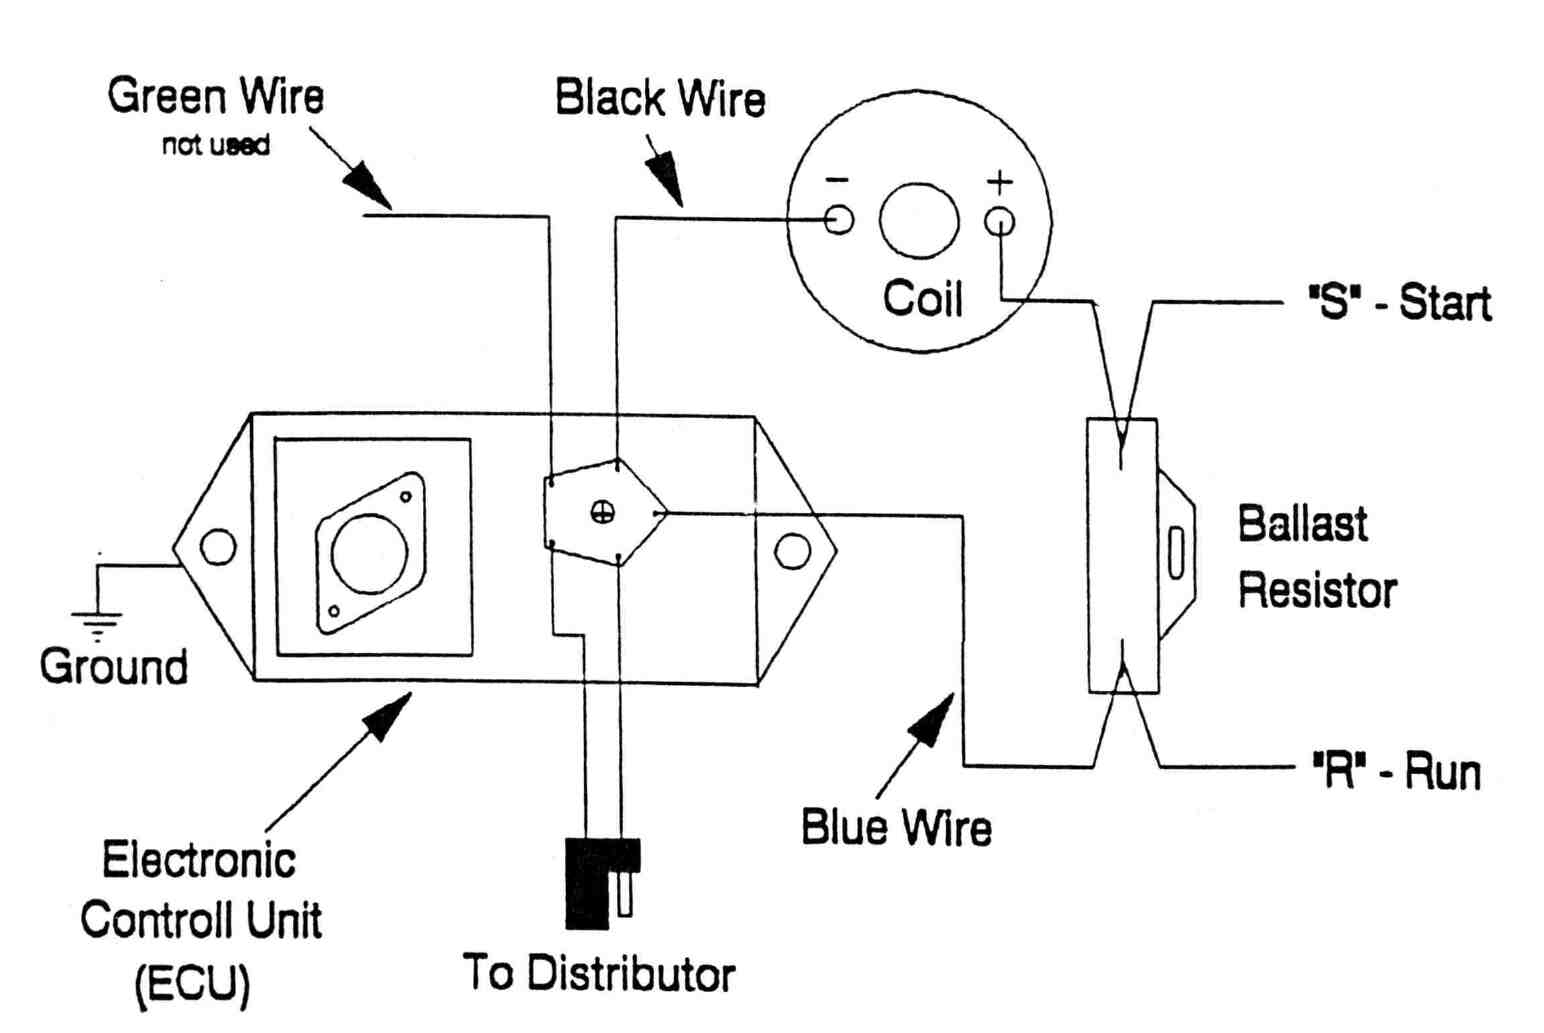 Dodge Electronic Ignition Wiring Diagram | Wiring Library - Dodge Electronic Ignition Wiring Diagram